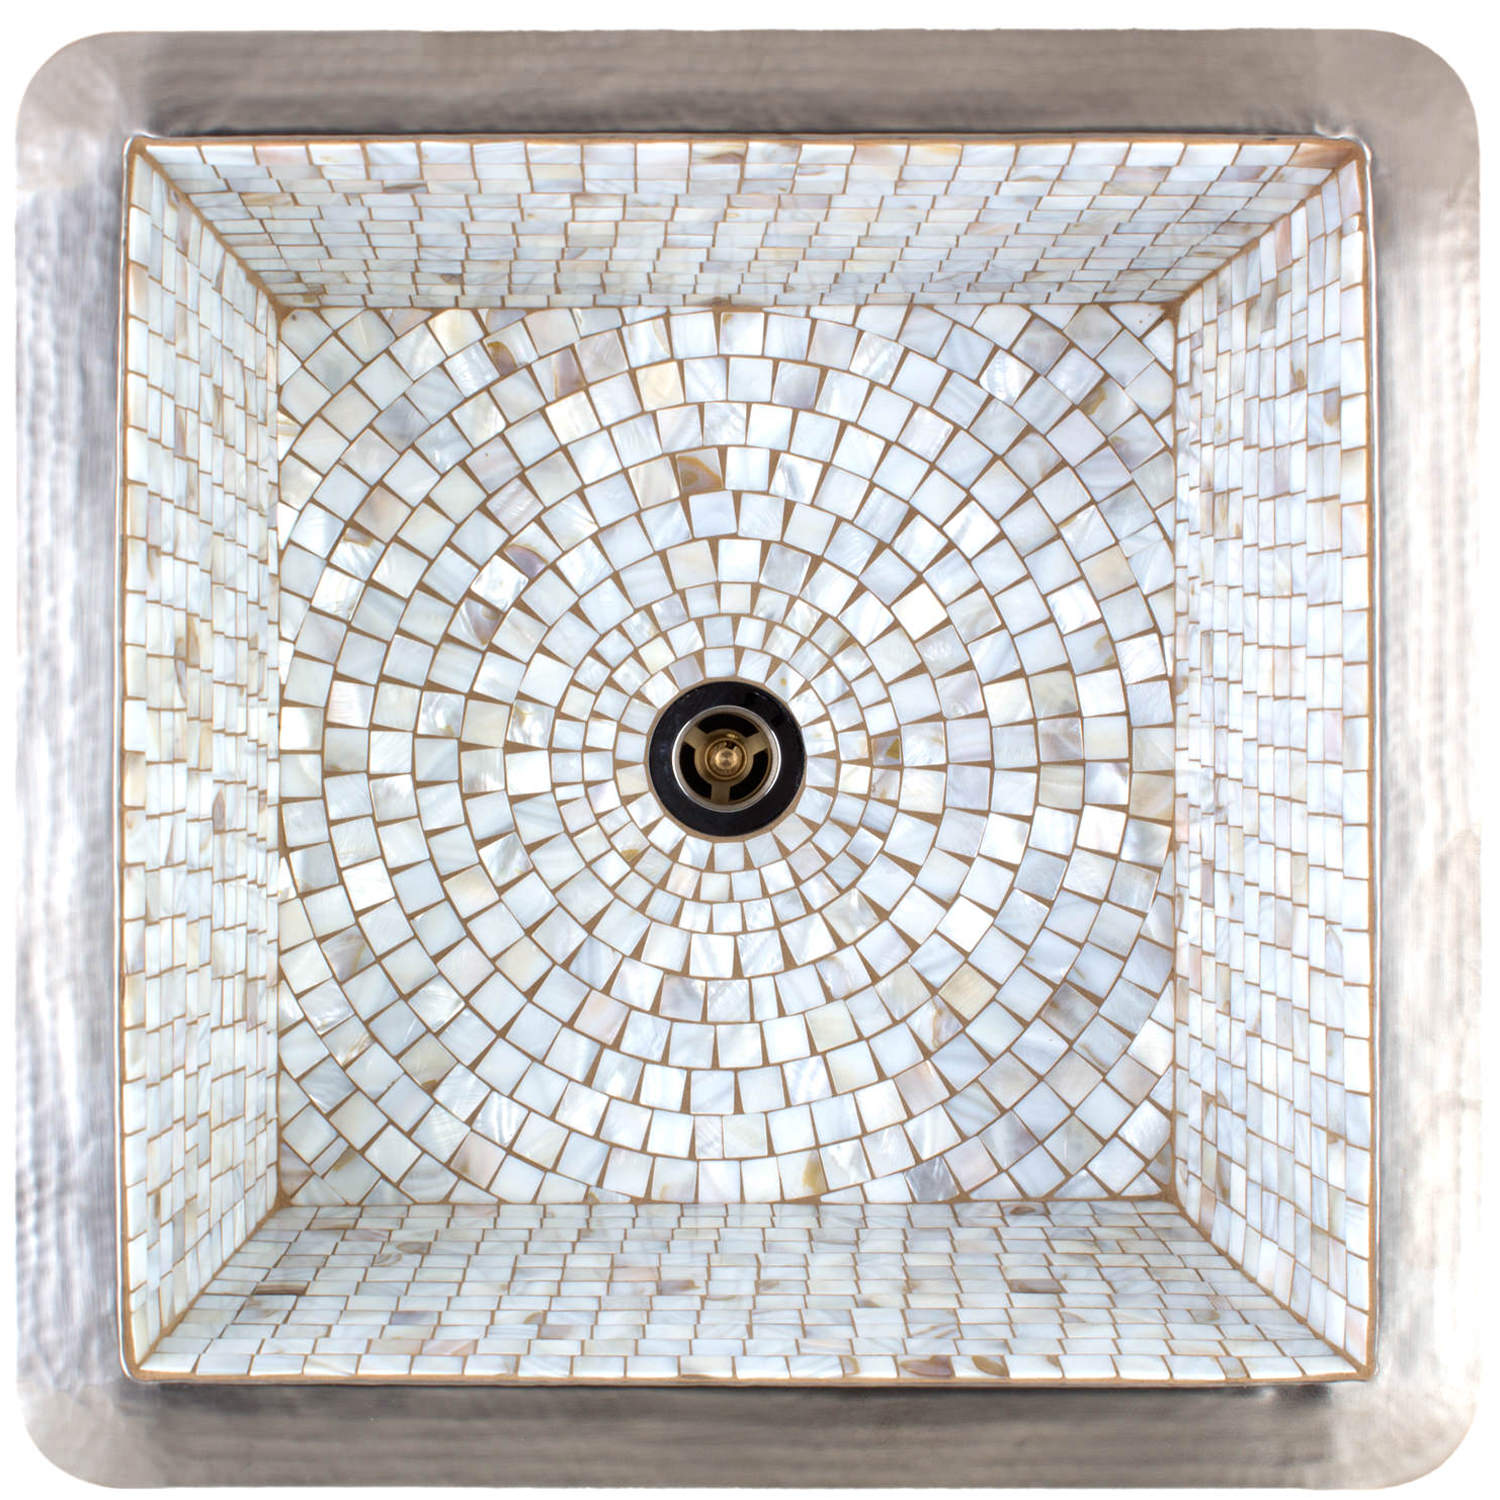 "Linkasink Bar Sinks - Copper - V008-MOP Square Copper & Mosaic Tile Sink 16 x 16 x 8 - 1.5 to 3.5"" drain"